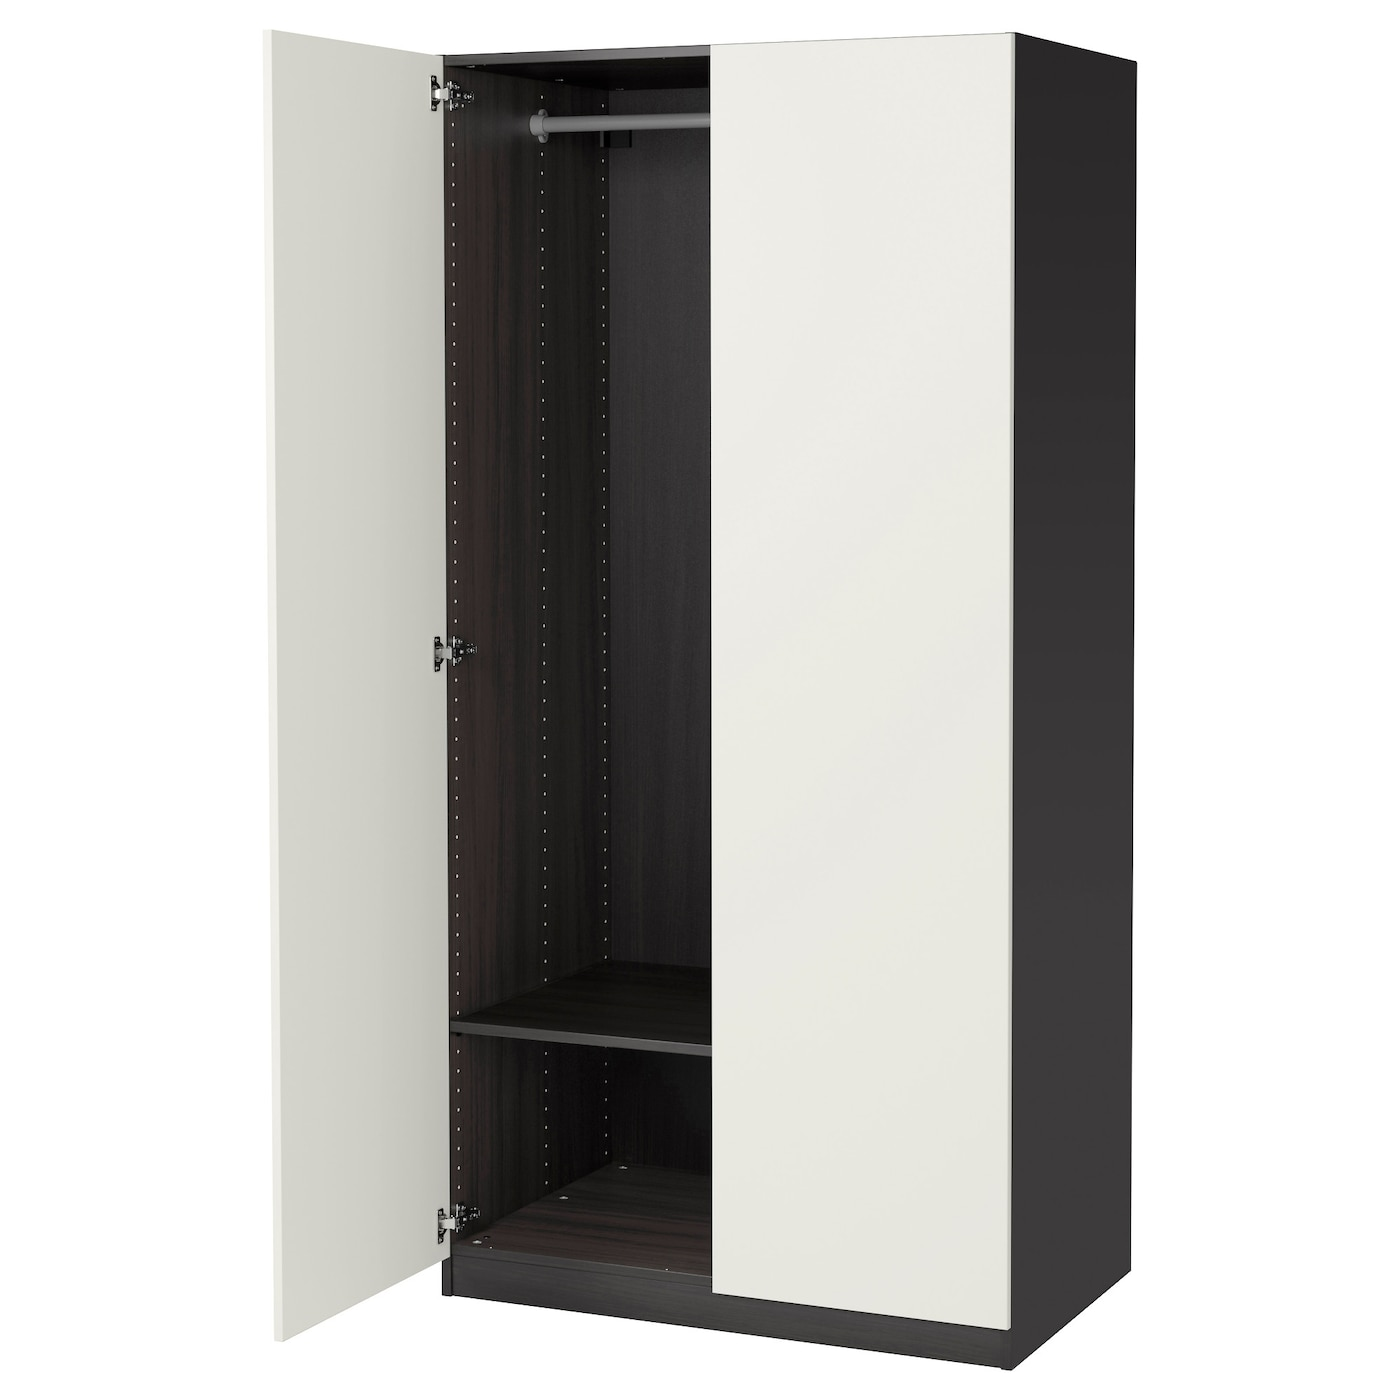 black furniture ikea. IKEA PAX Wardrobe 10 Year Guarantee Read About The Terms In Brochure Black Furniture Ikea